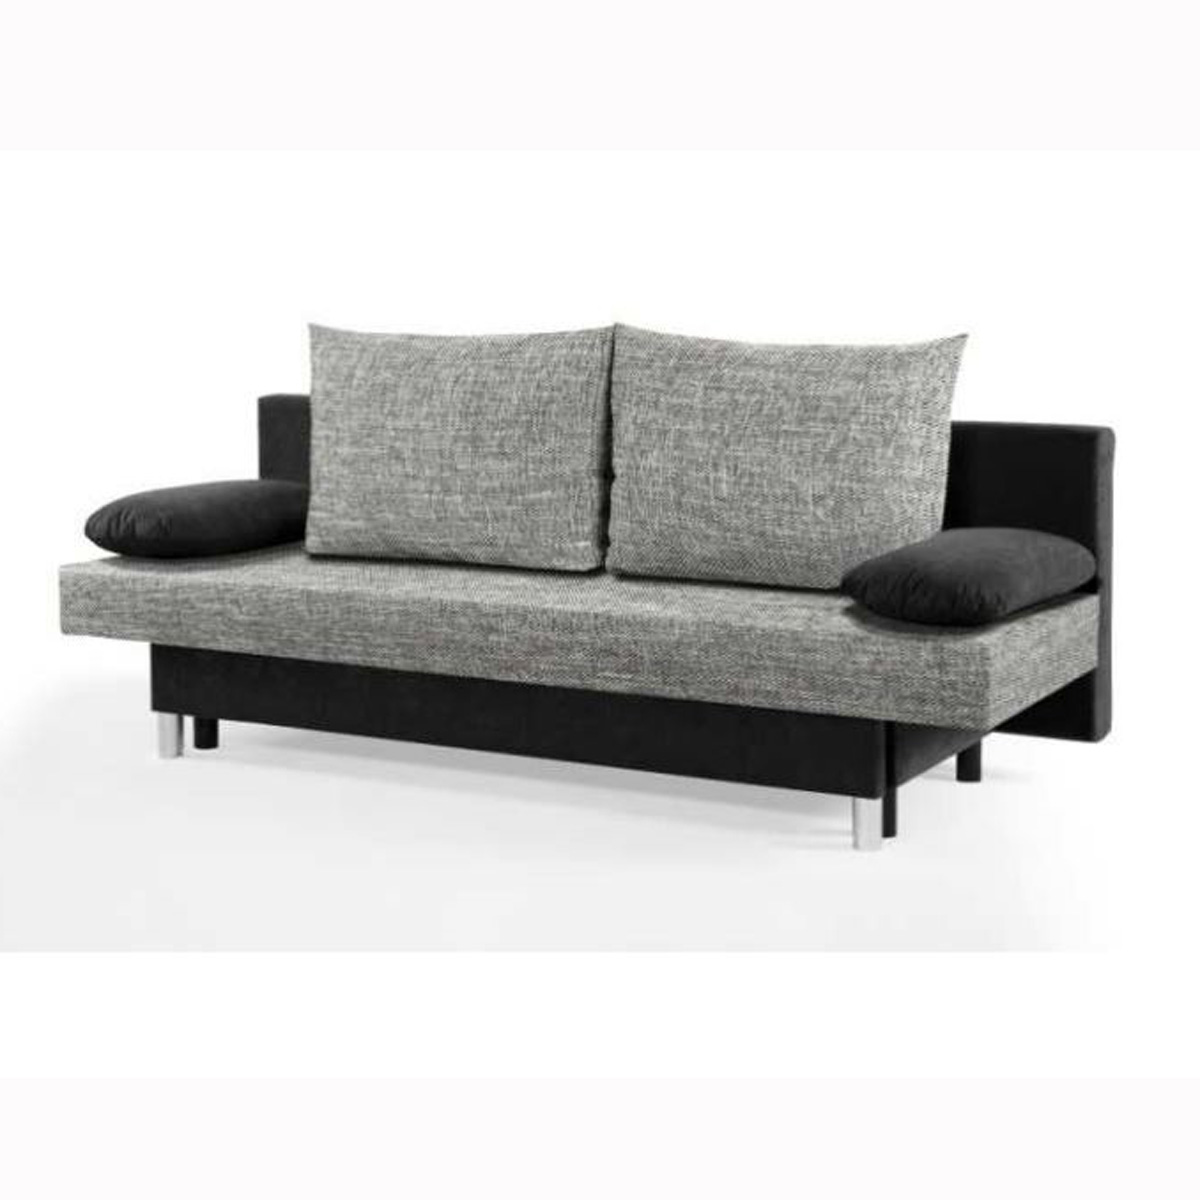 schlafsofa jelly sofa mit bettkasten in schwarz und grau. Black Bedroom Furniture Sets. Home Design Ideas